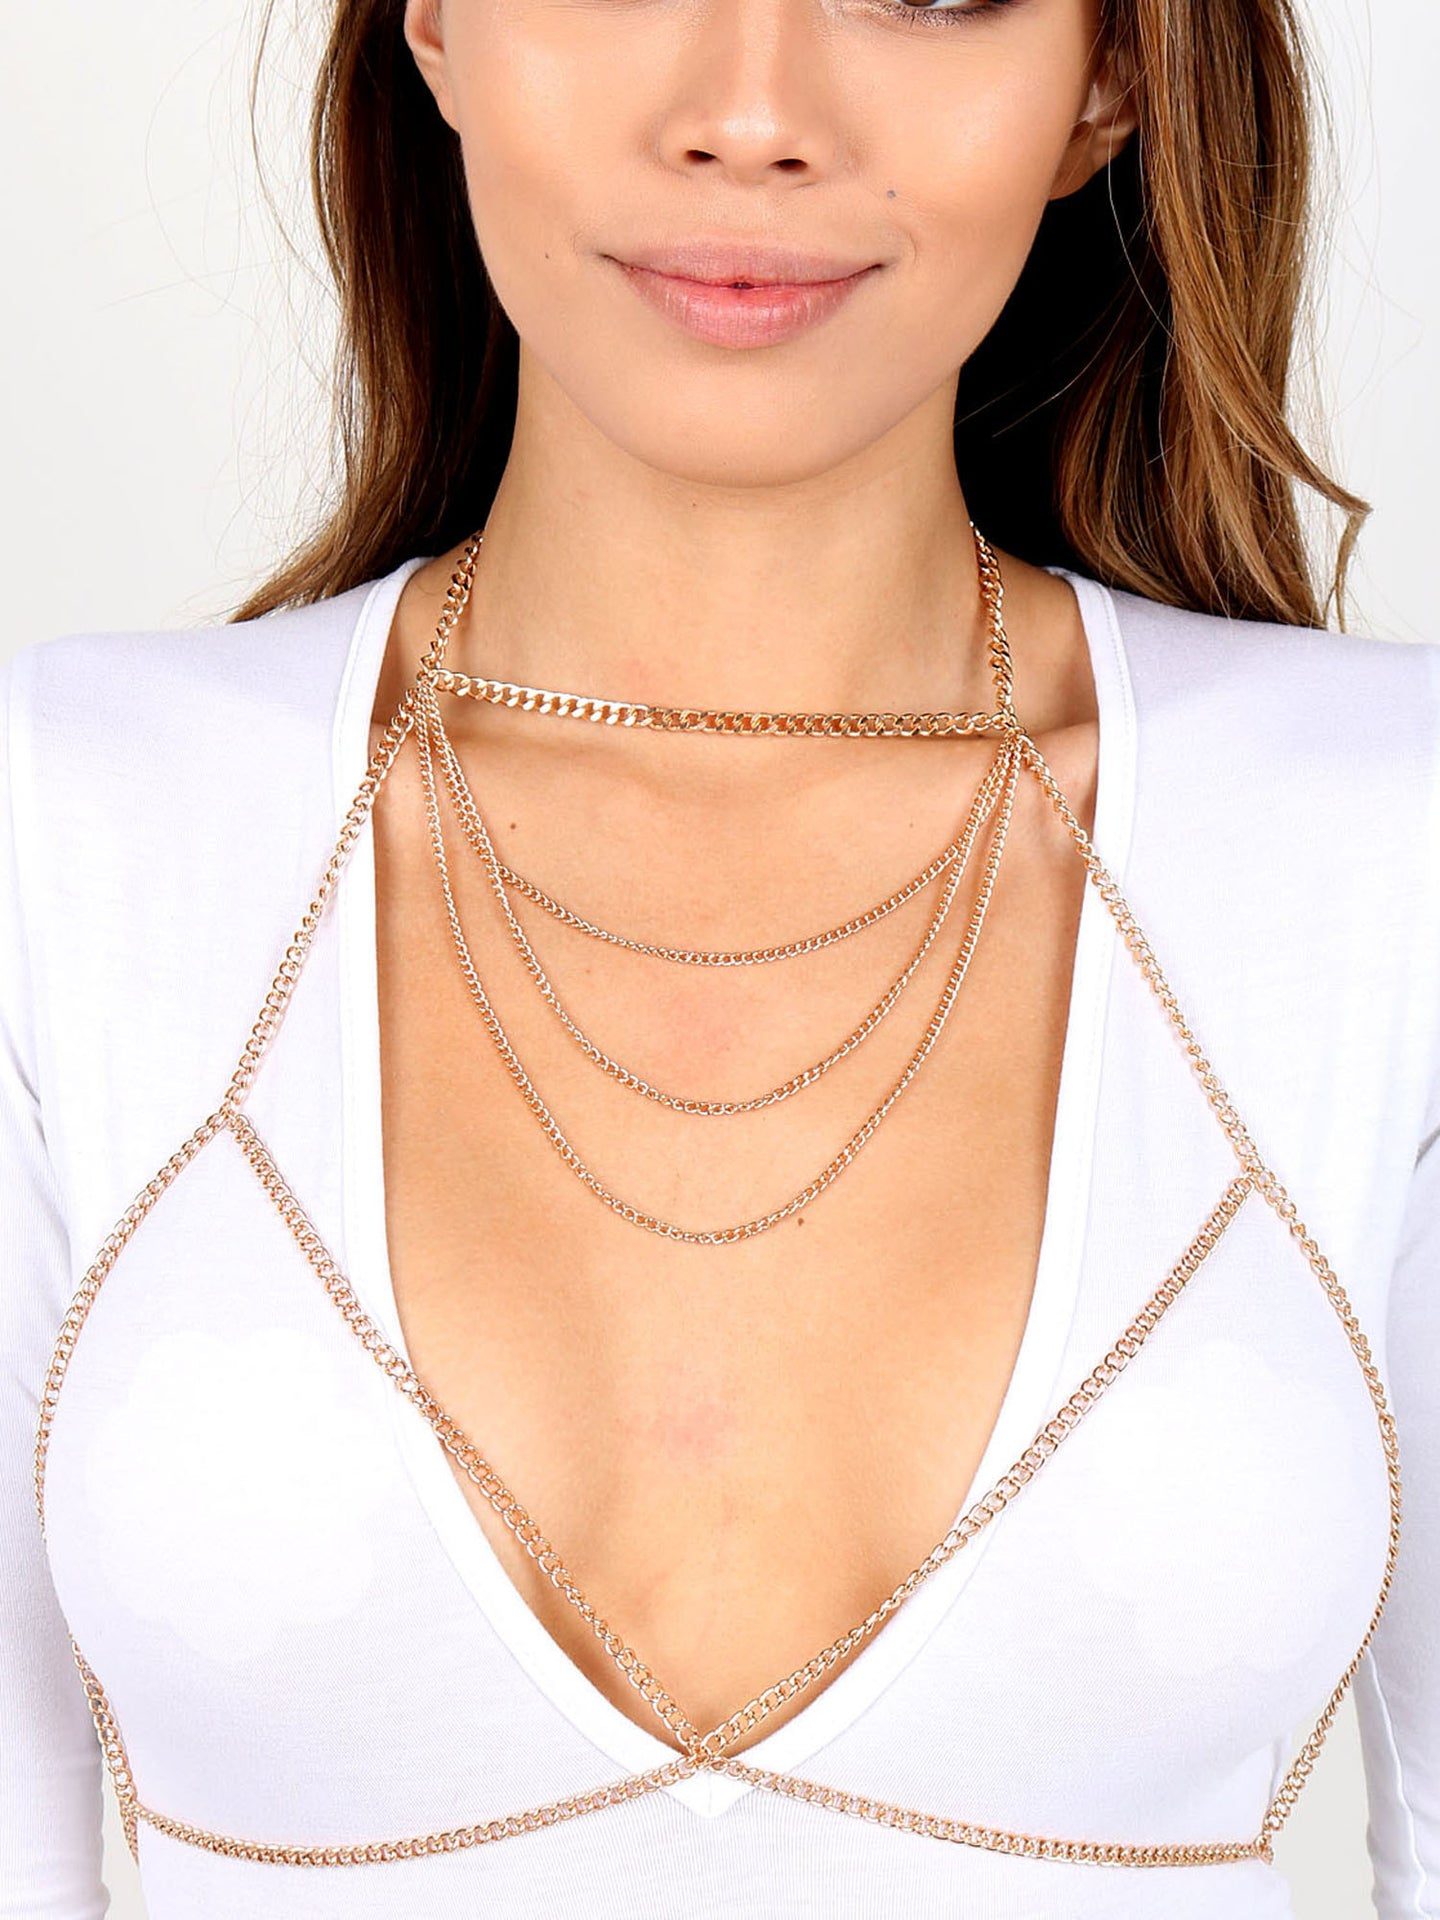 Chained Up Bra Chain